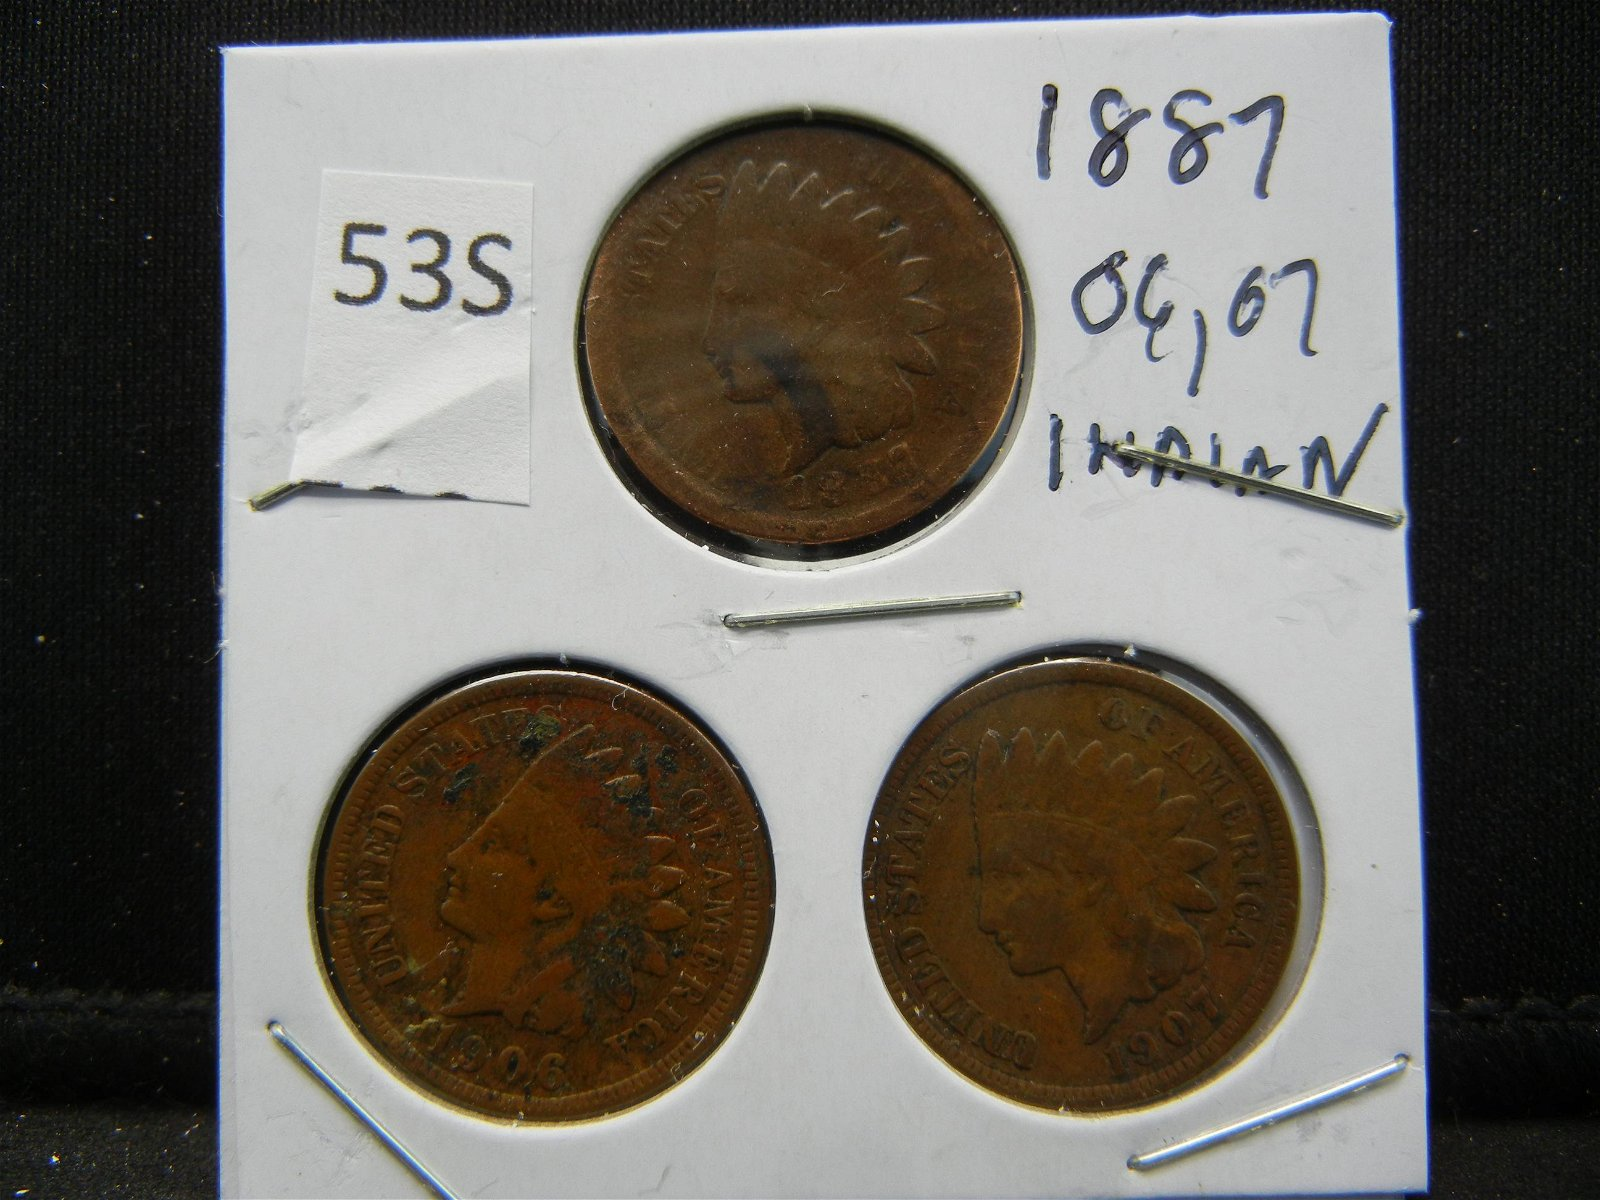 1887, 06, 07 Indian Head Cents